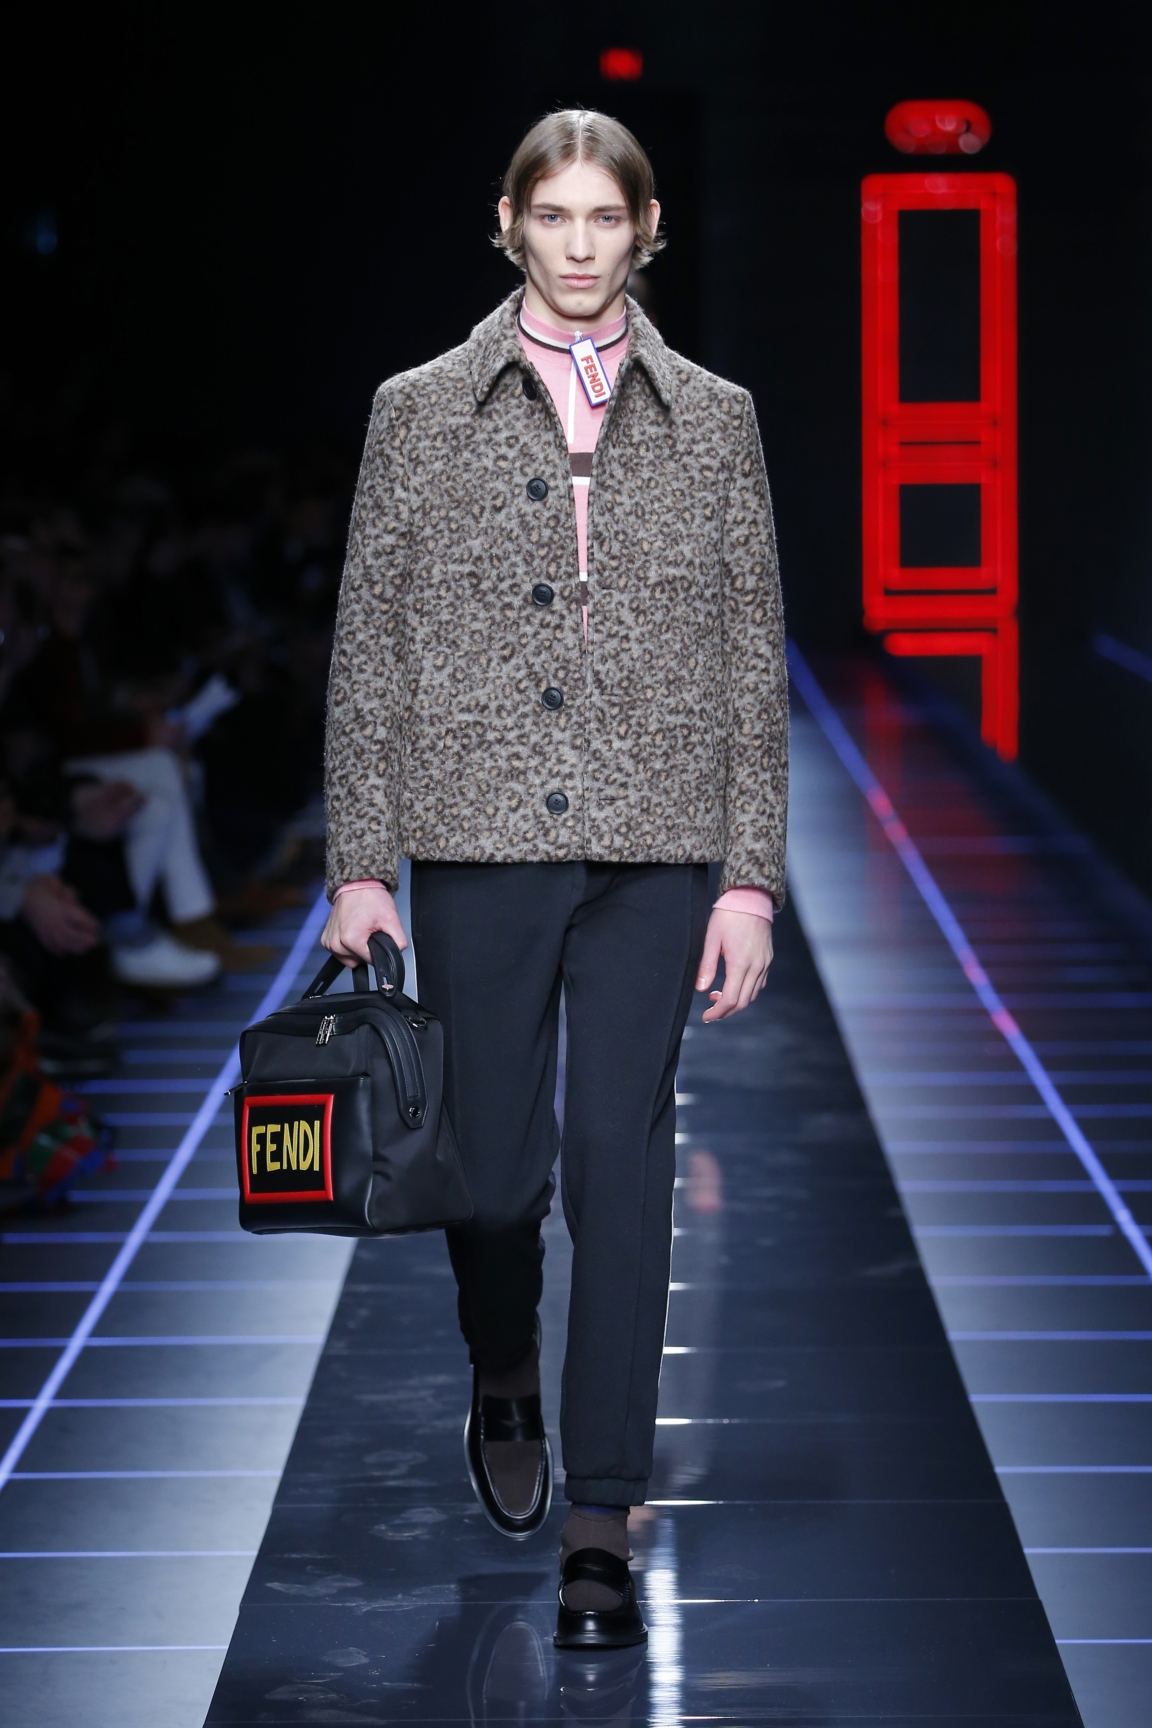 fendi-men-fw16-17-look-04